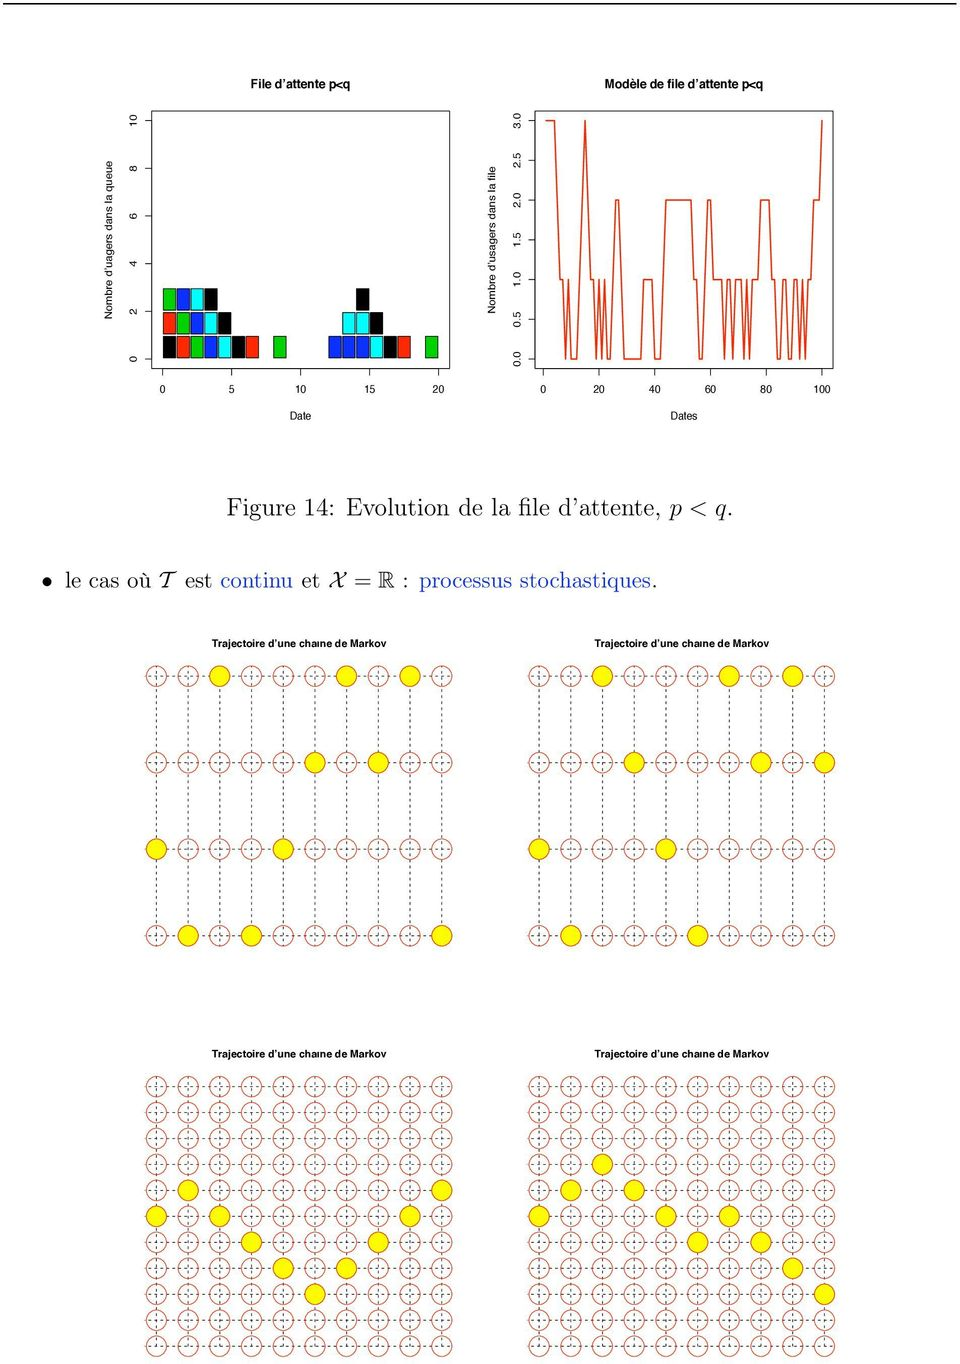 0 0 5 0 5 20 Date 0 20 40 60 80 00 Dates Figure 4: Evolutio de la file d attete, p < q.